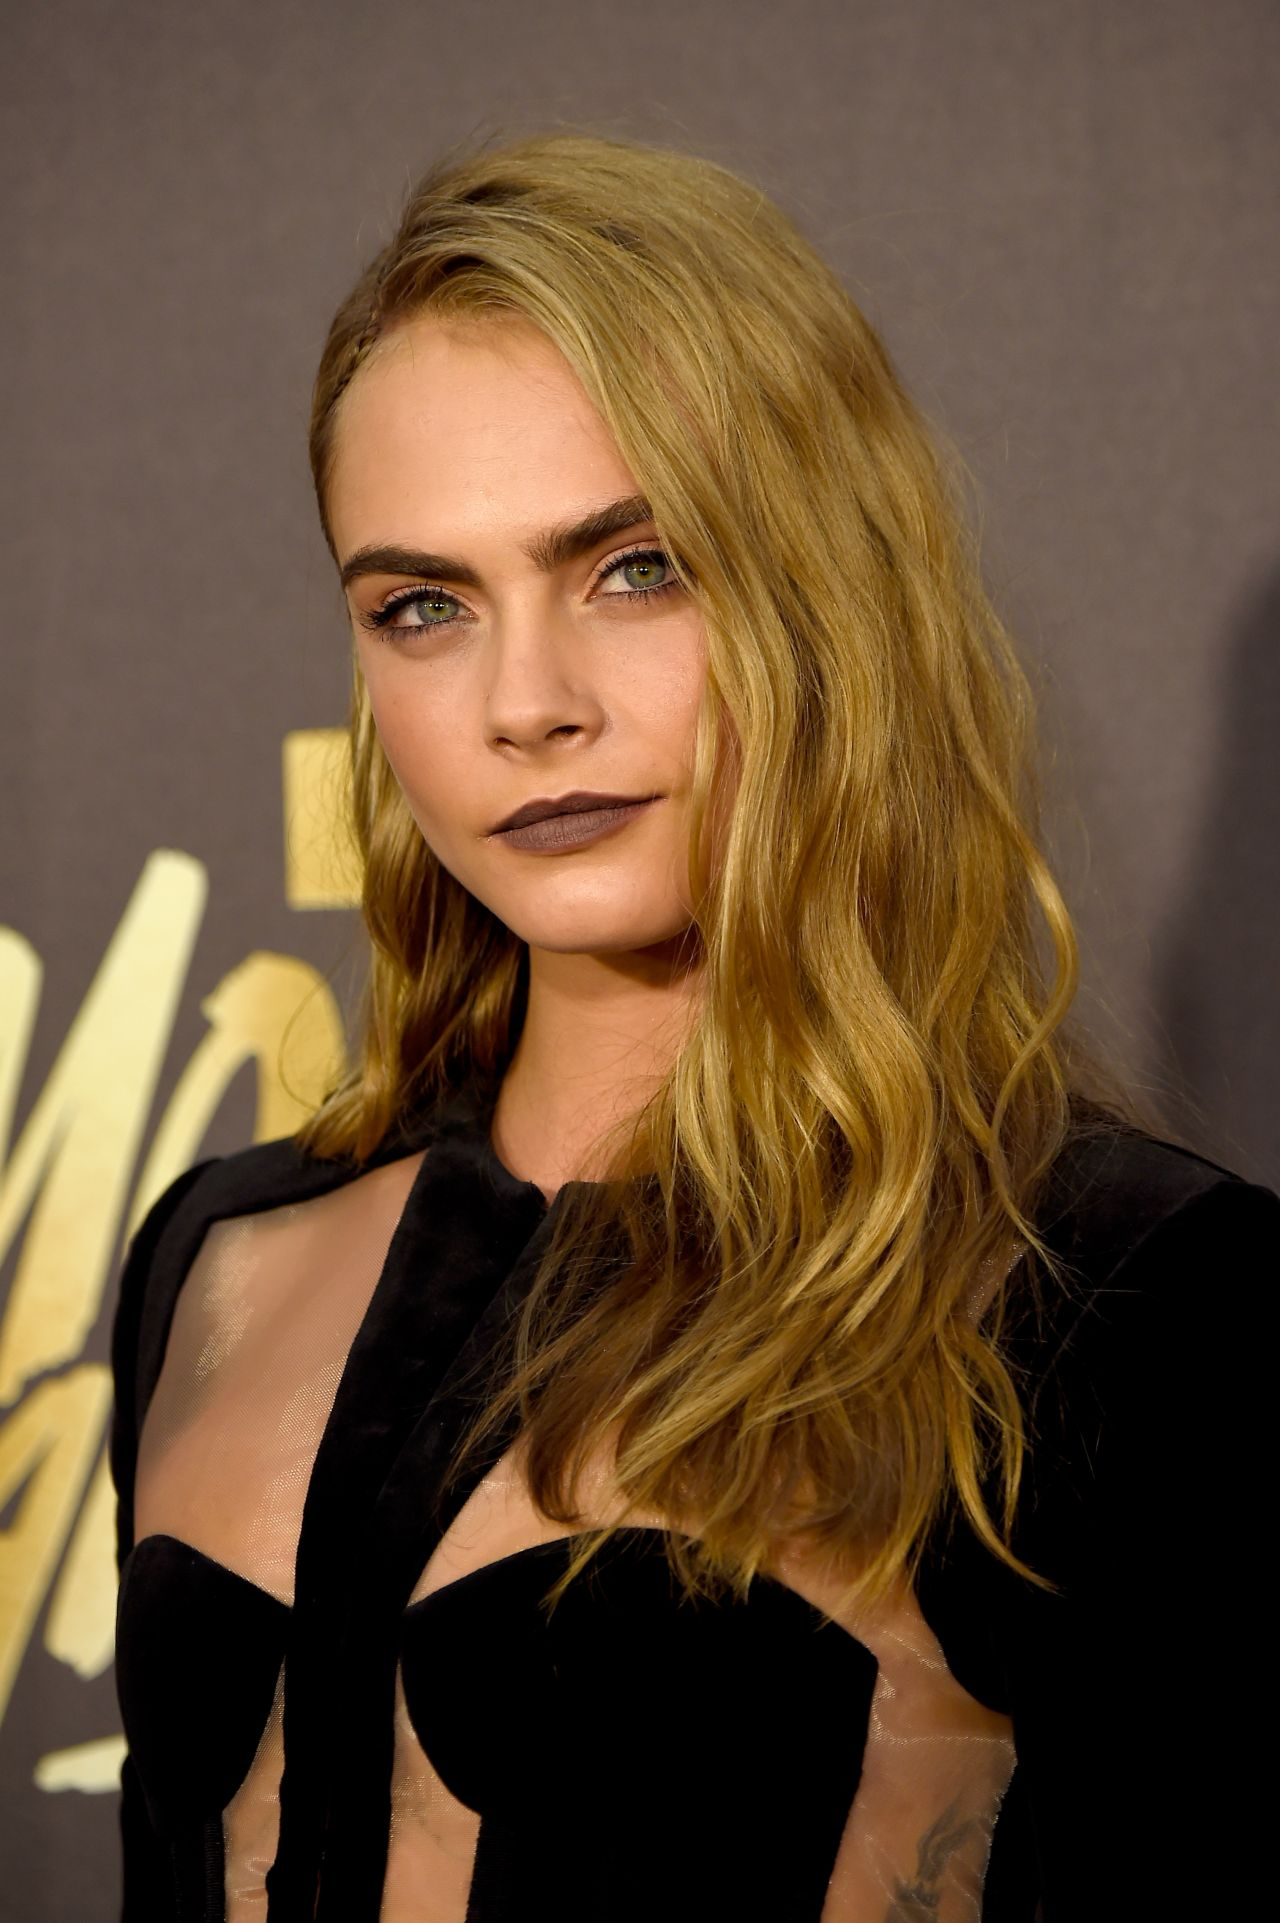 Image result for cara delevingne 2016